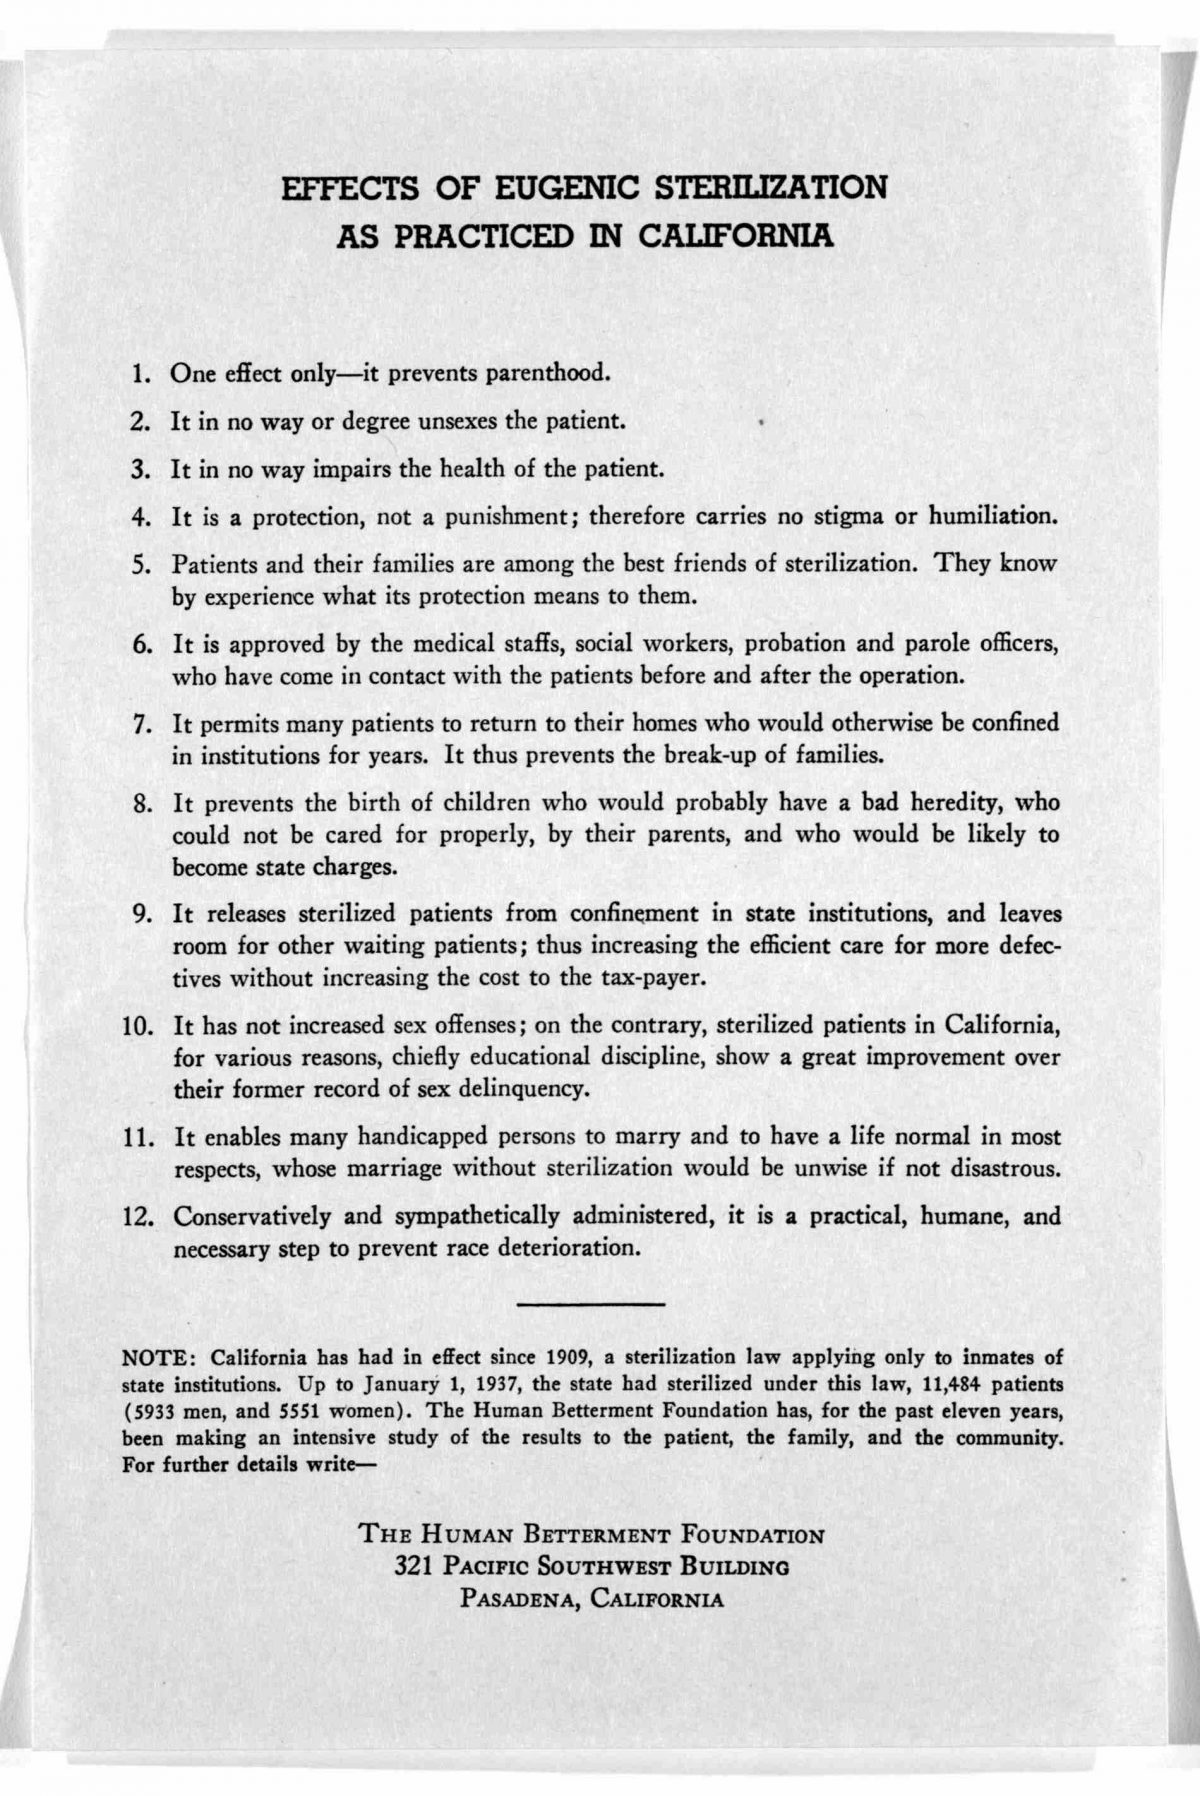 Effects of eugenic sterilization as practiced in California ... The Human betterment foundation, Pasadena, California. [1937?].